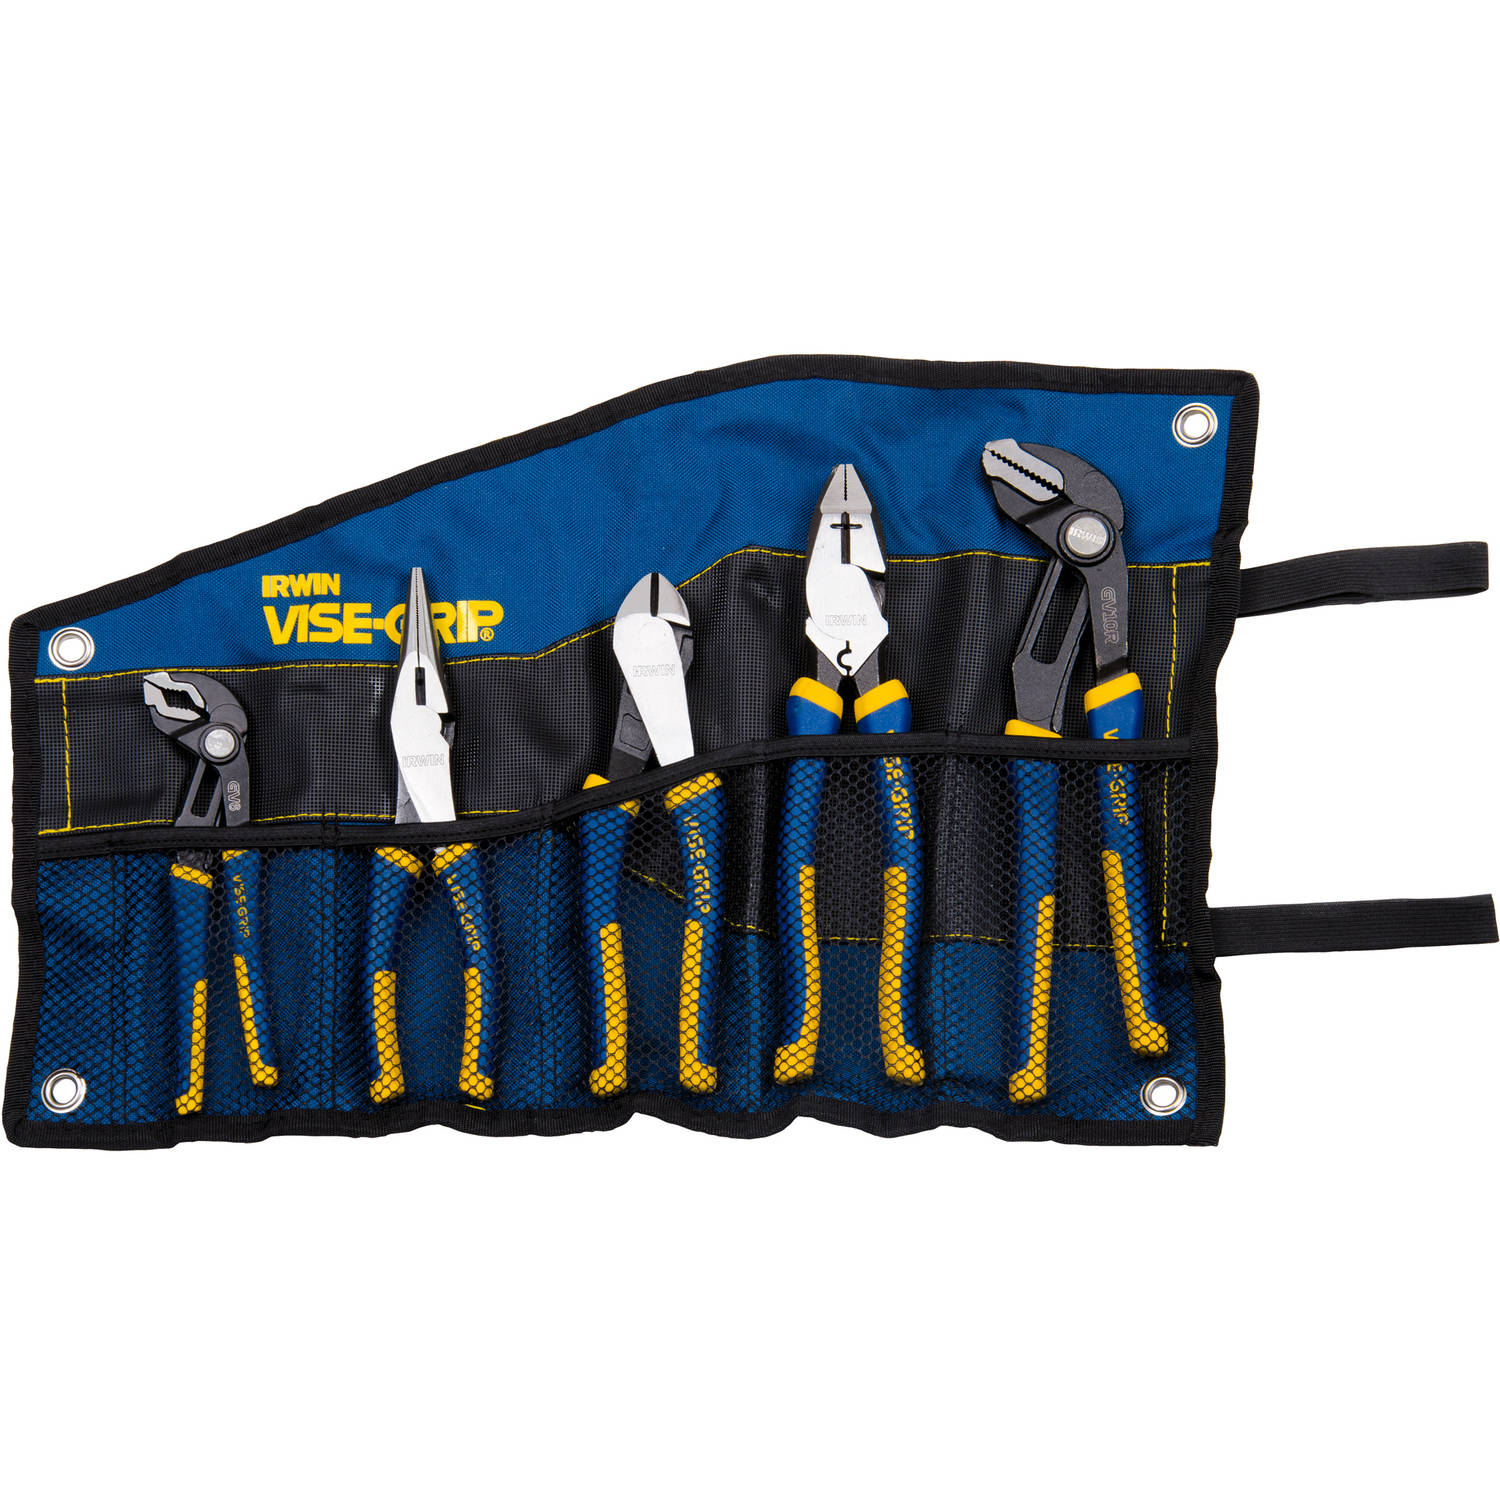 Irwin Vise-Grip ProPlier 5-Piece Kitbag Pliers Set